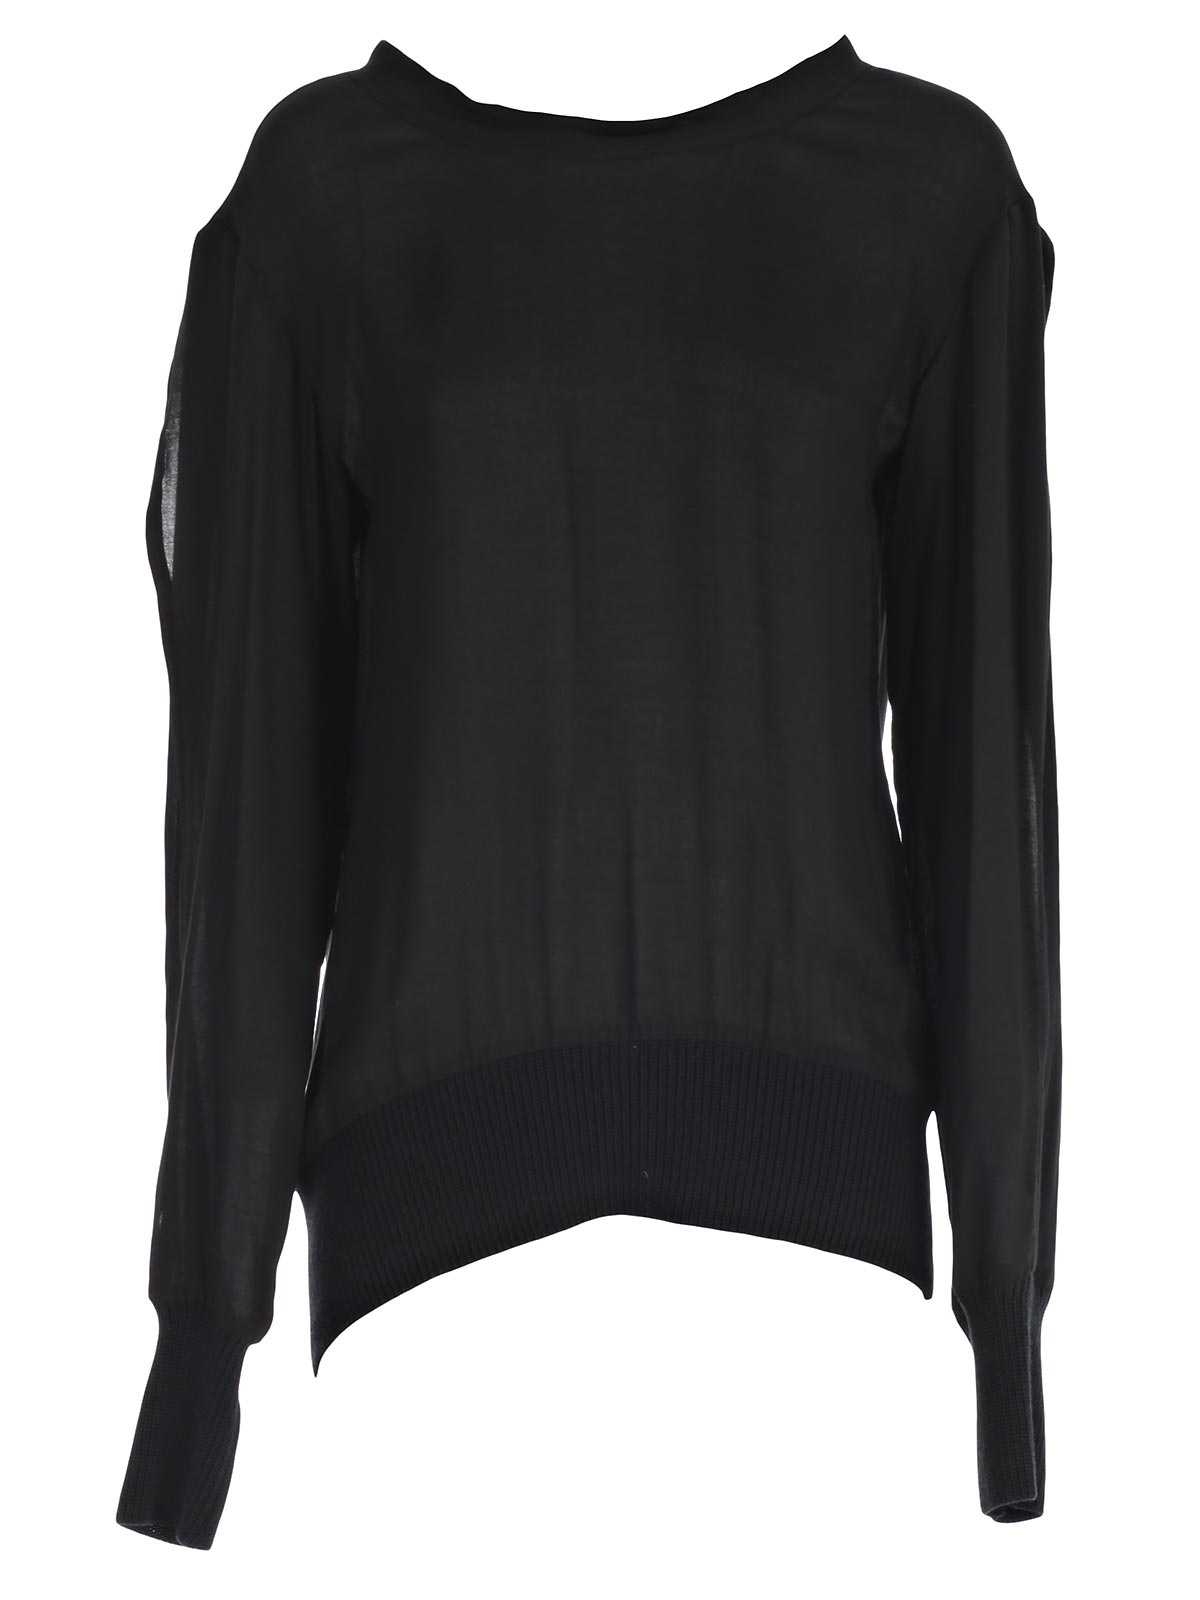 Picture of ANN DEMEULEMESTER TOP